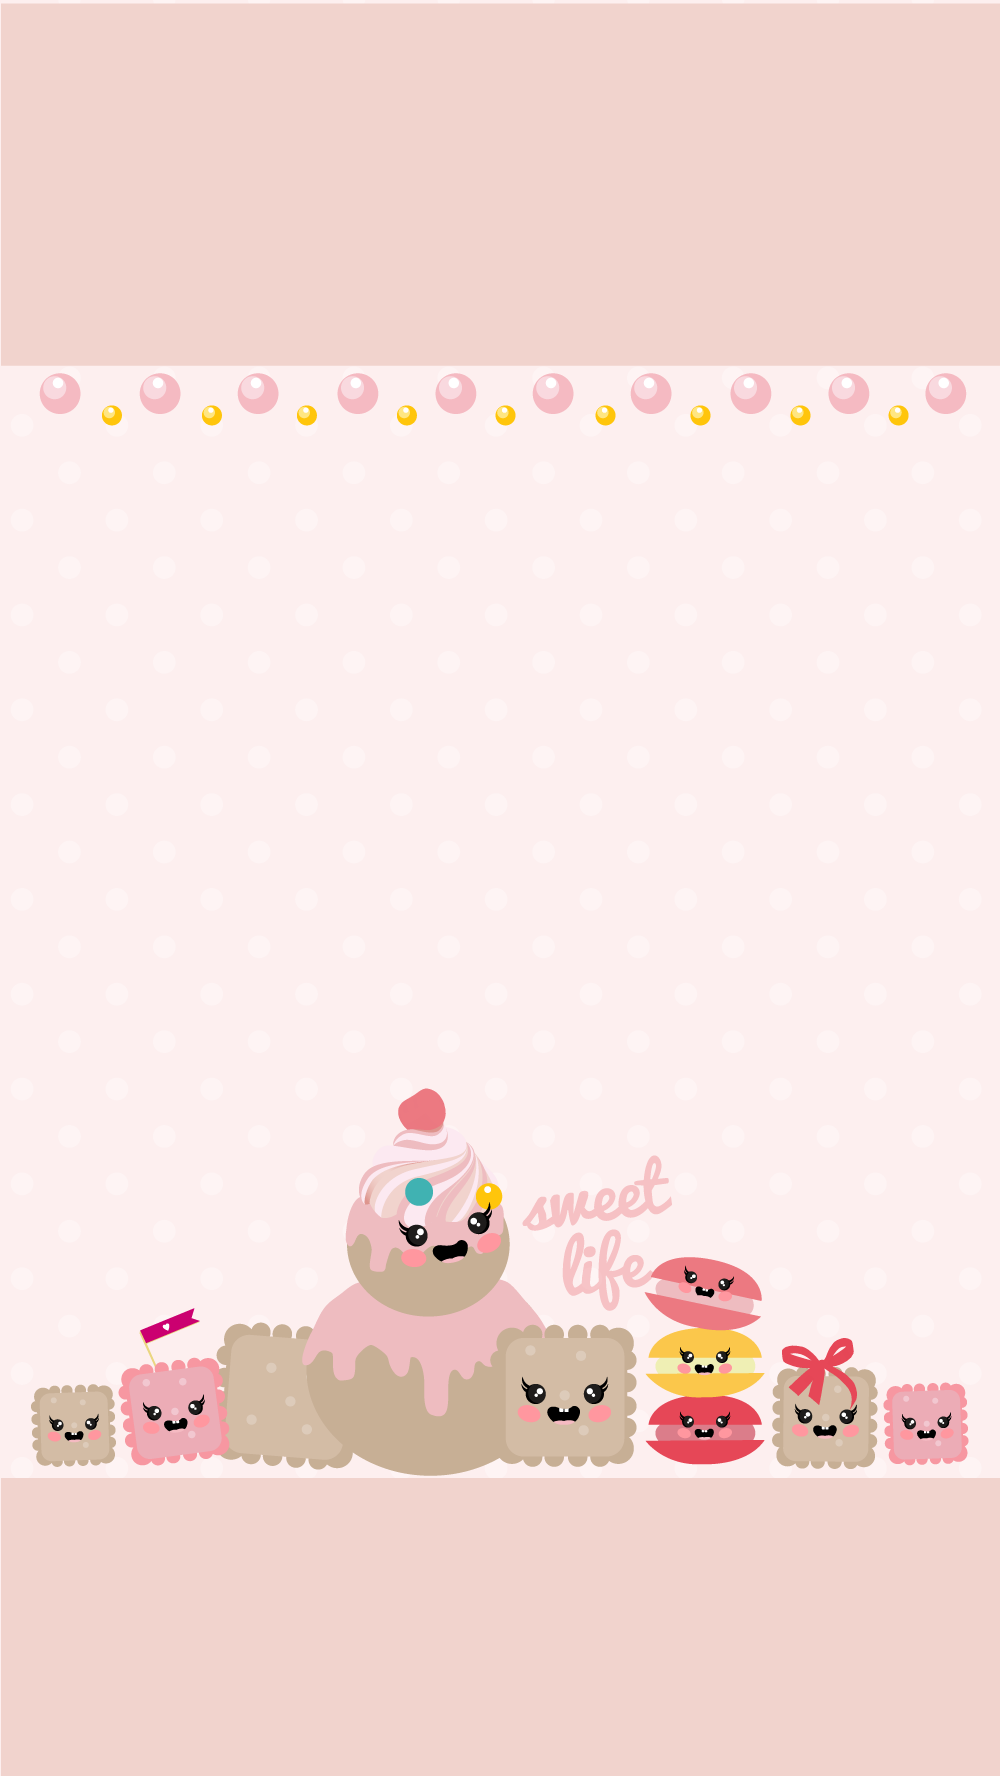 Wonderful Wallpaper Hello Kitty Cupcake - ad926320e4136682fcded9ea06bb75da  Picture_51162.png